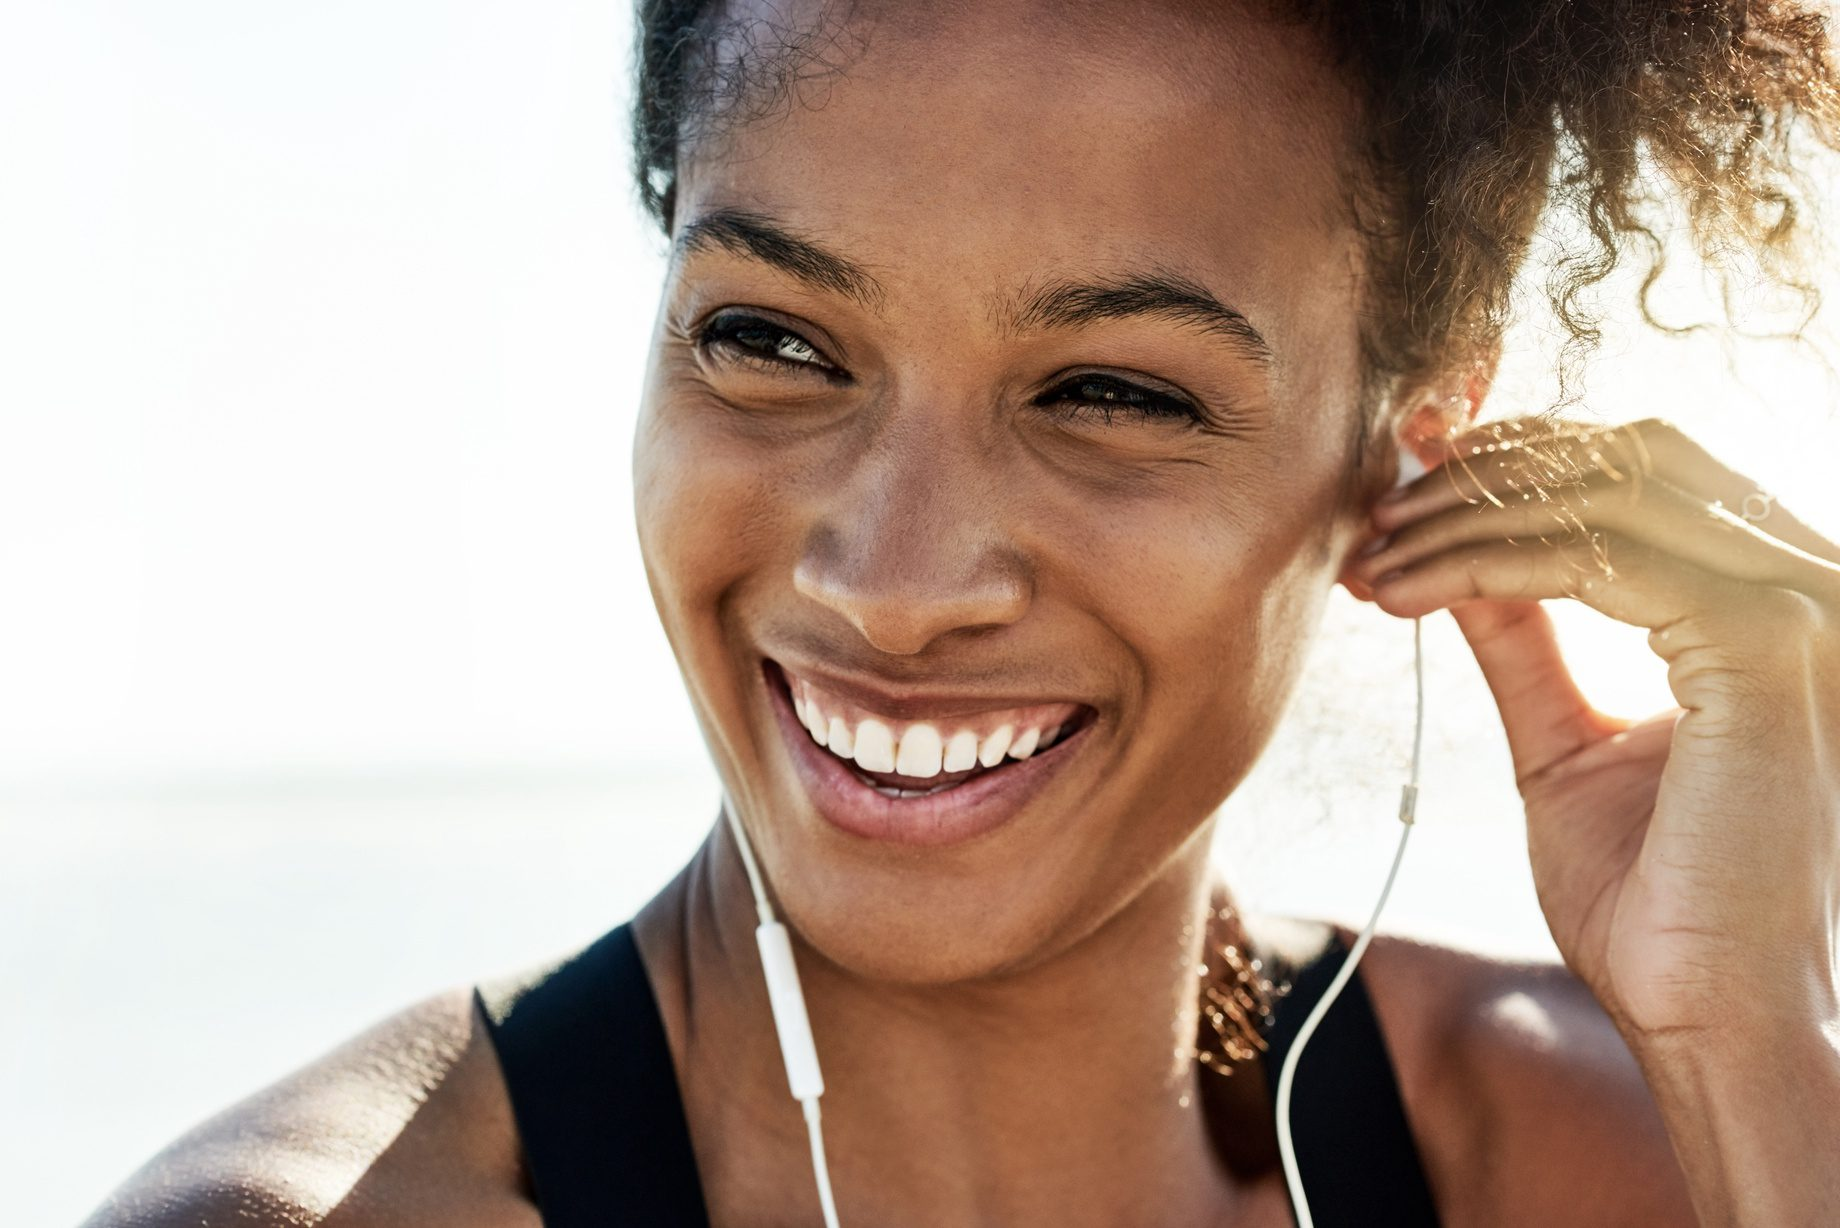 a woman smiling while listening to music